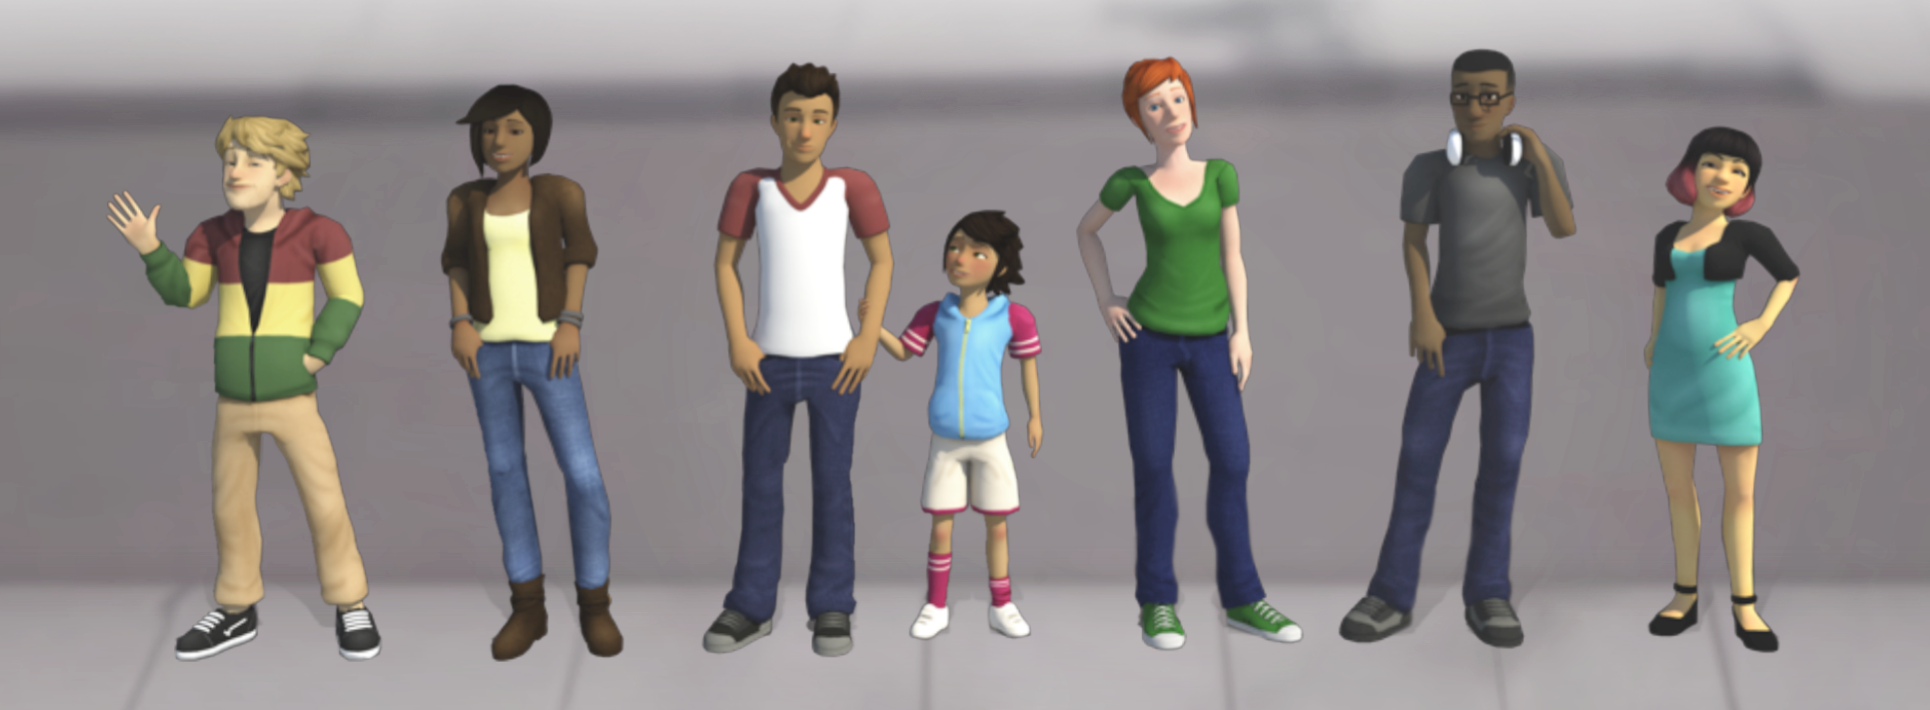 Rich cast of believable virtual characters